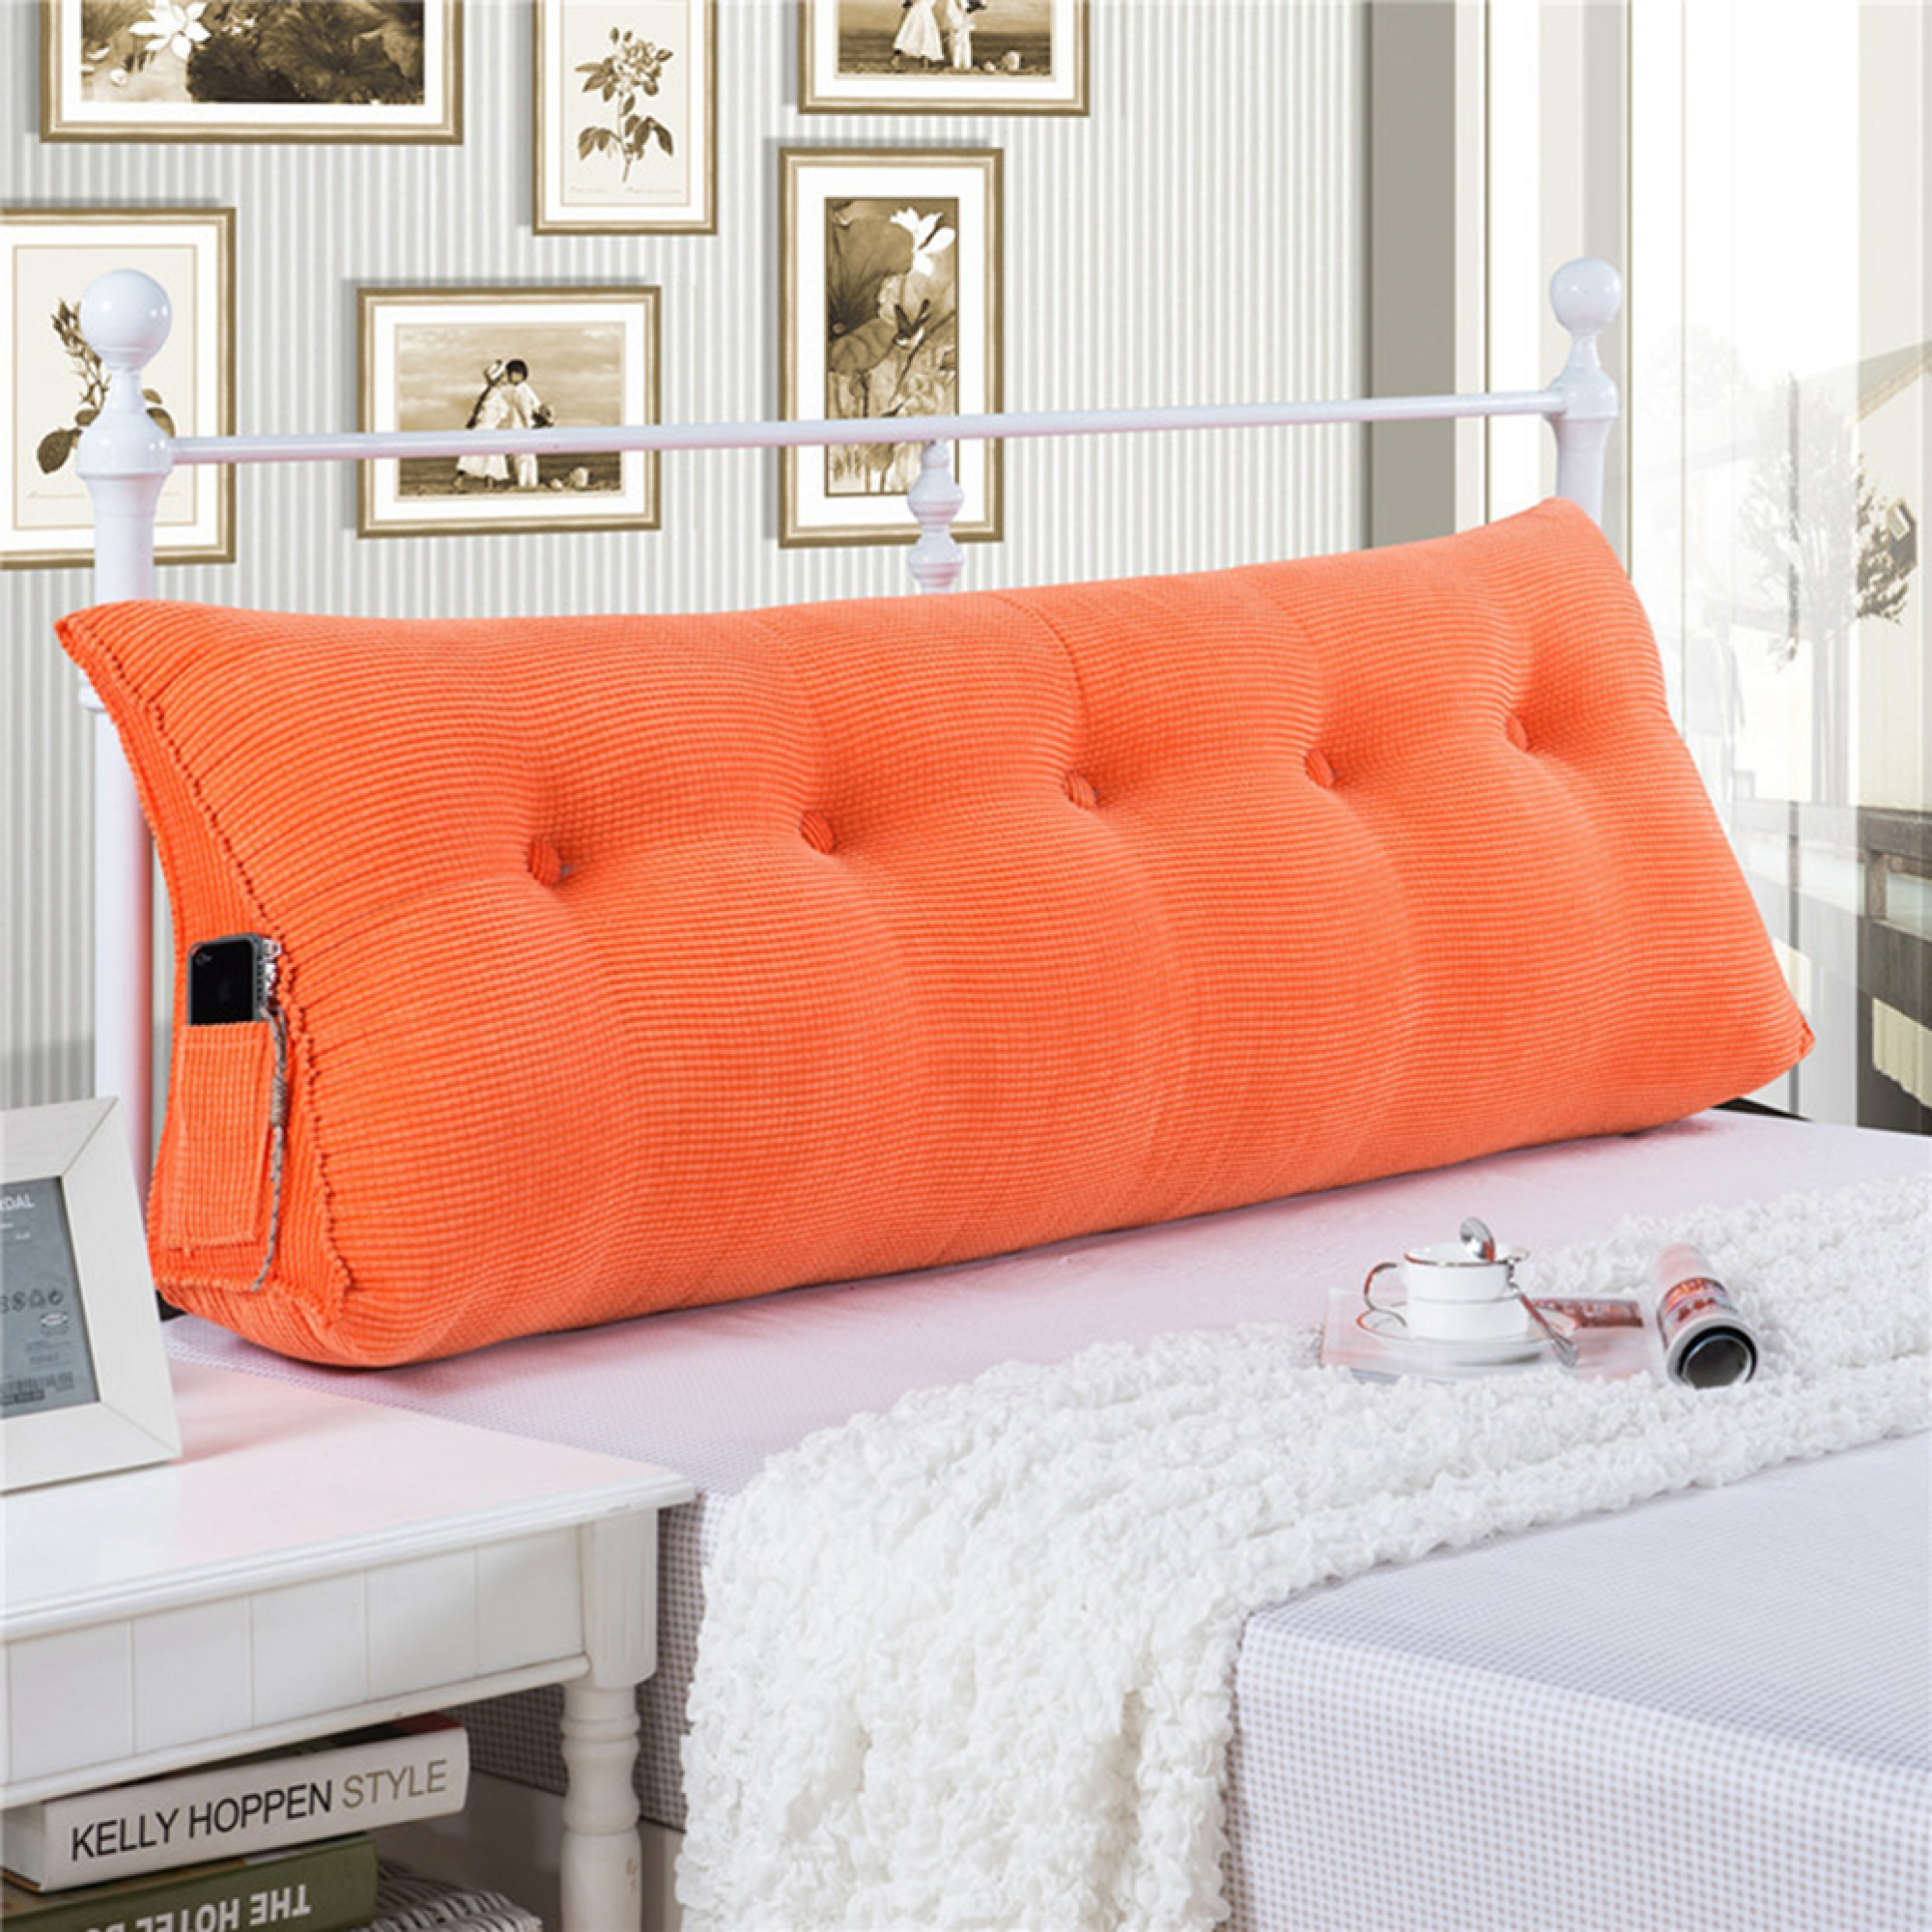 e12f0fd79ba4 Sofa Bed Large Filled Triangular Wedge Cushion Bed Backrest Positioning  Support Pillow Reading Pillow Office Lumbar Pad with Removable Cover Orange  Twin